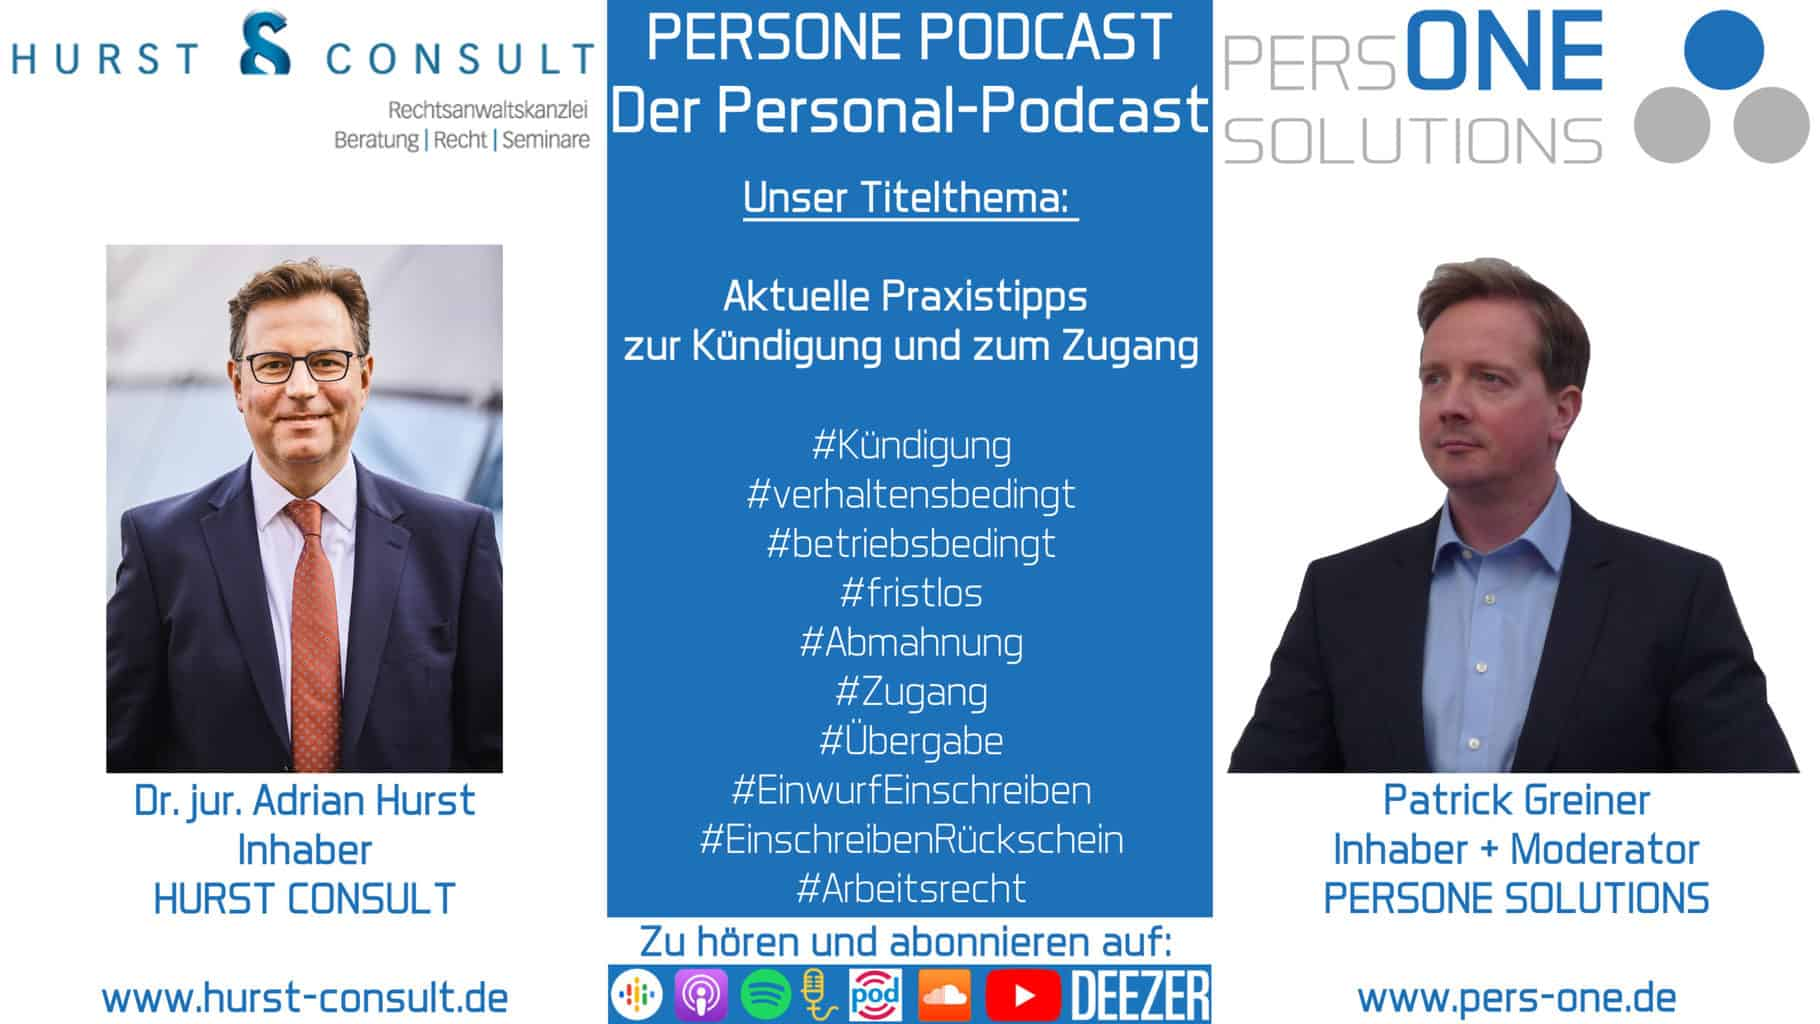 Dr. Hurst, Adrian_Kündigung_Interview-YT2 Layout_PERSONE PODCAST